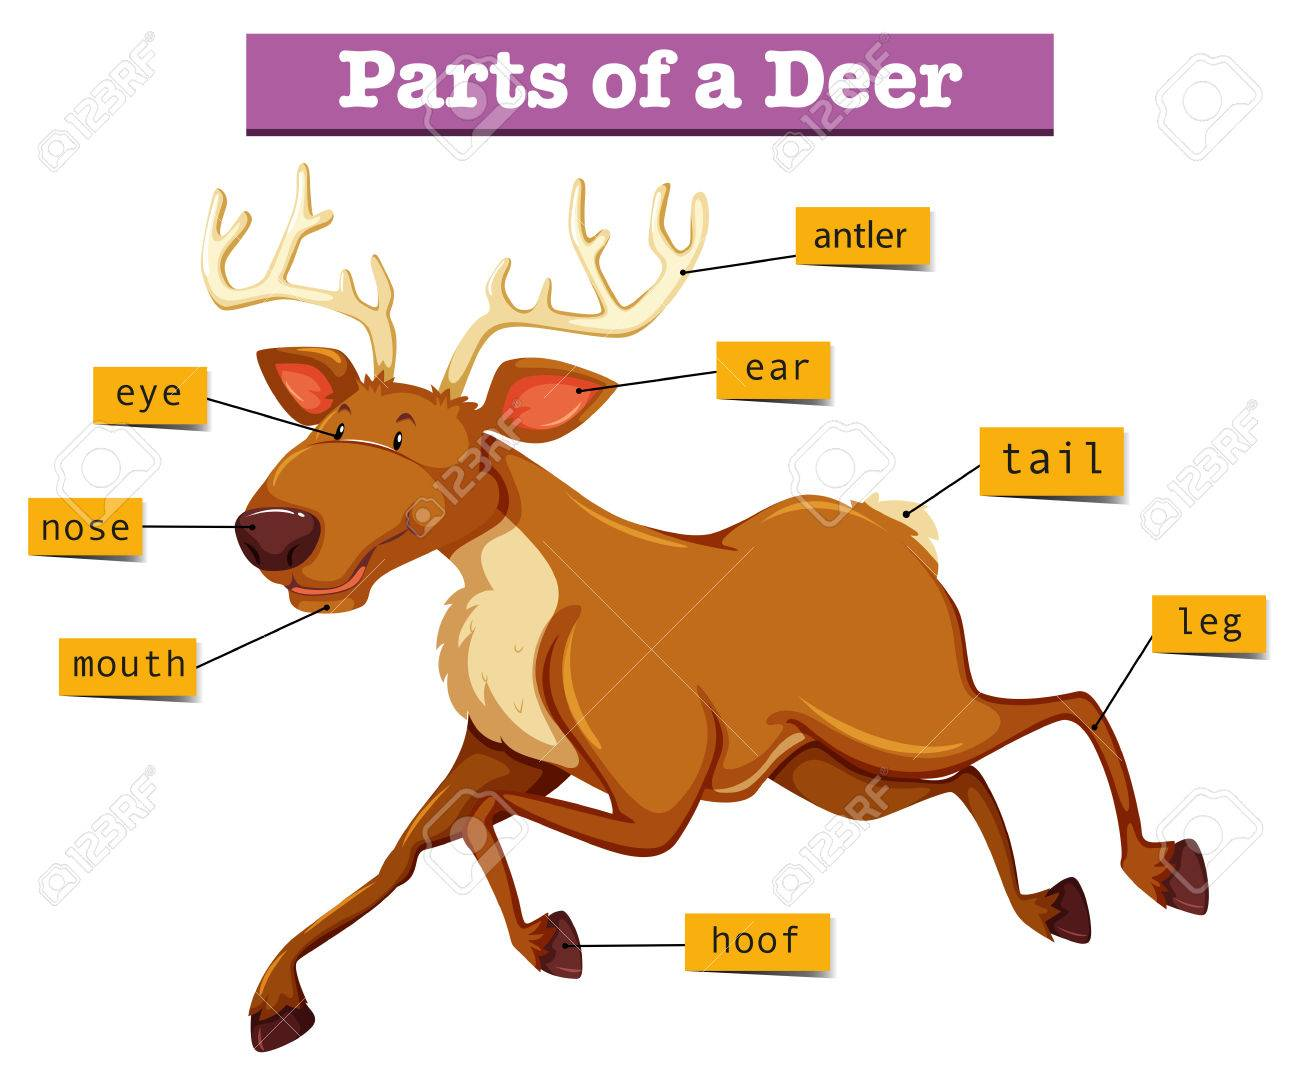 Deer diagram of leg residential electrical symbols diagram showing parts of deer illustration royalty free cliparts rh 123rf com deer processing diagram deer vital organs diagram ccuart Images